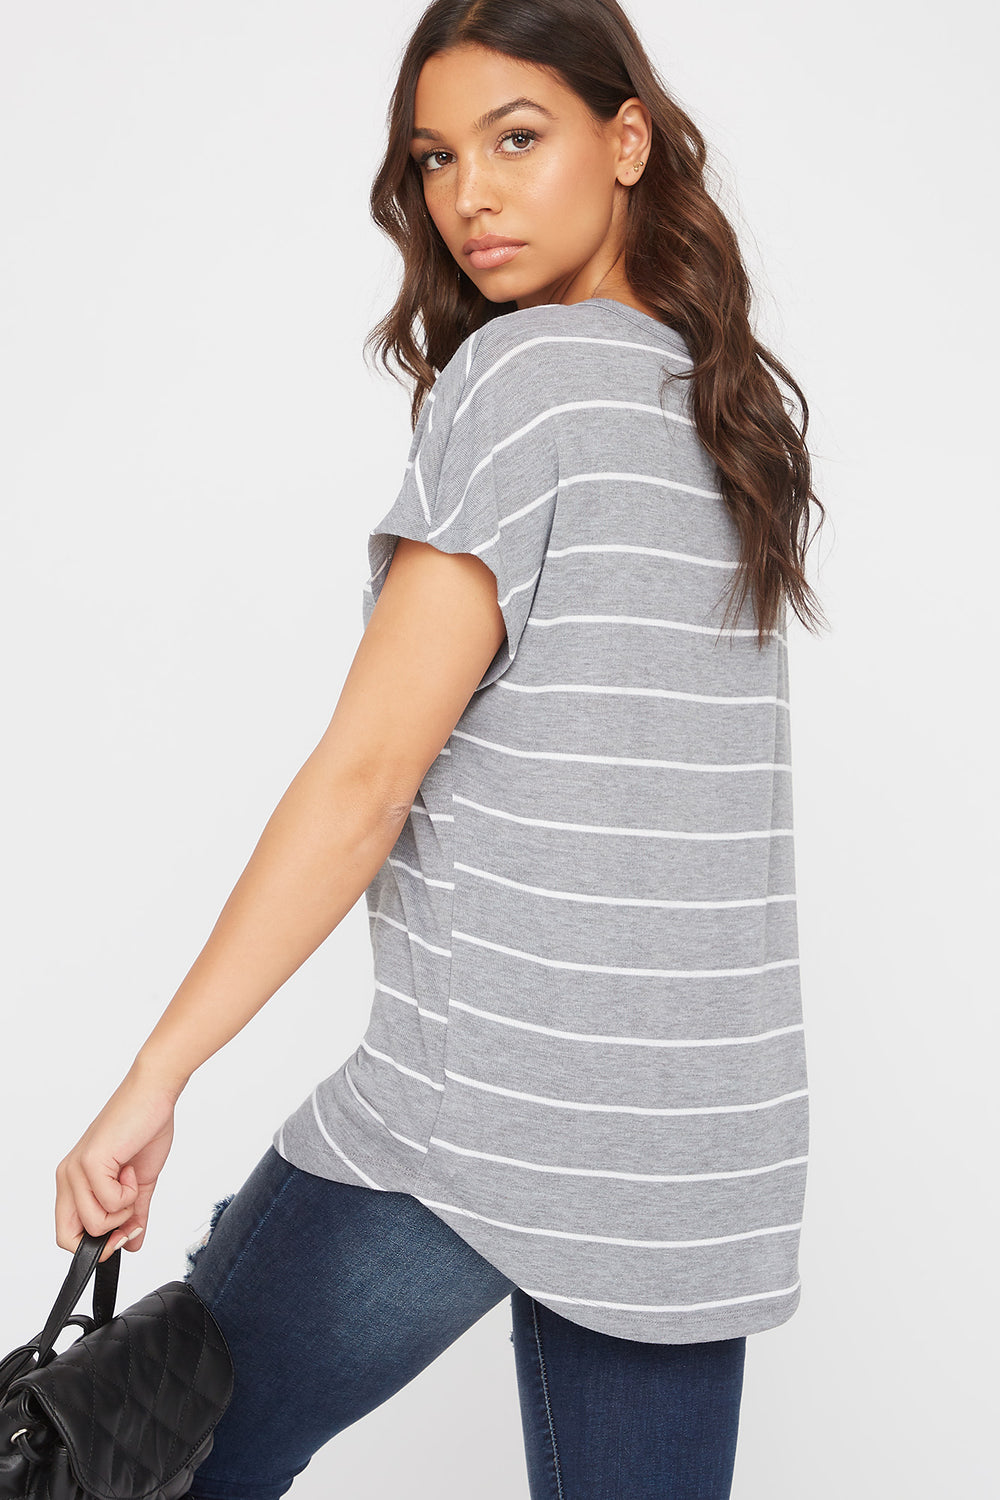 Striped Dolman Short Sleeve Top Light Grey